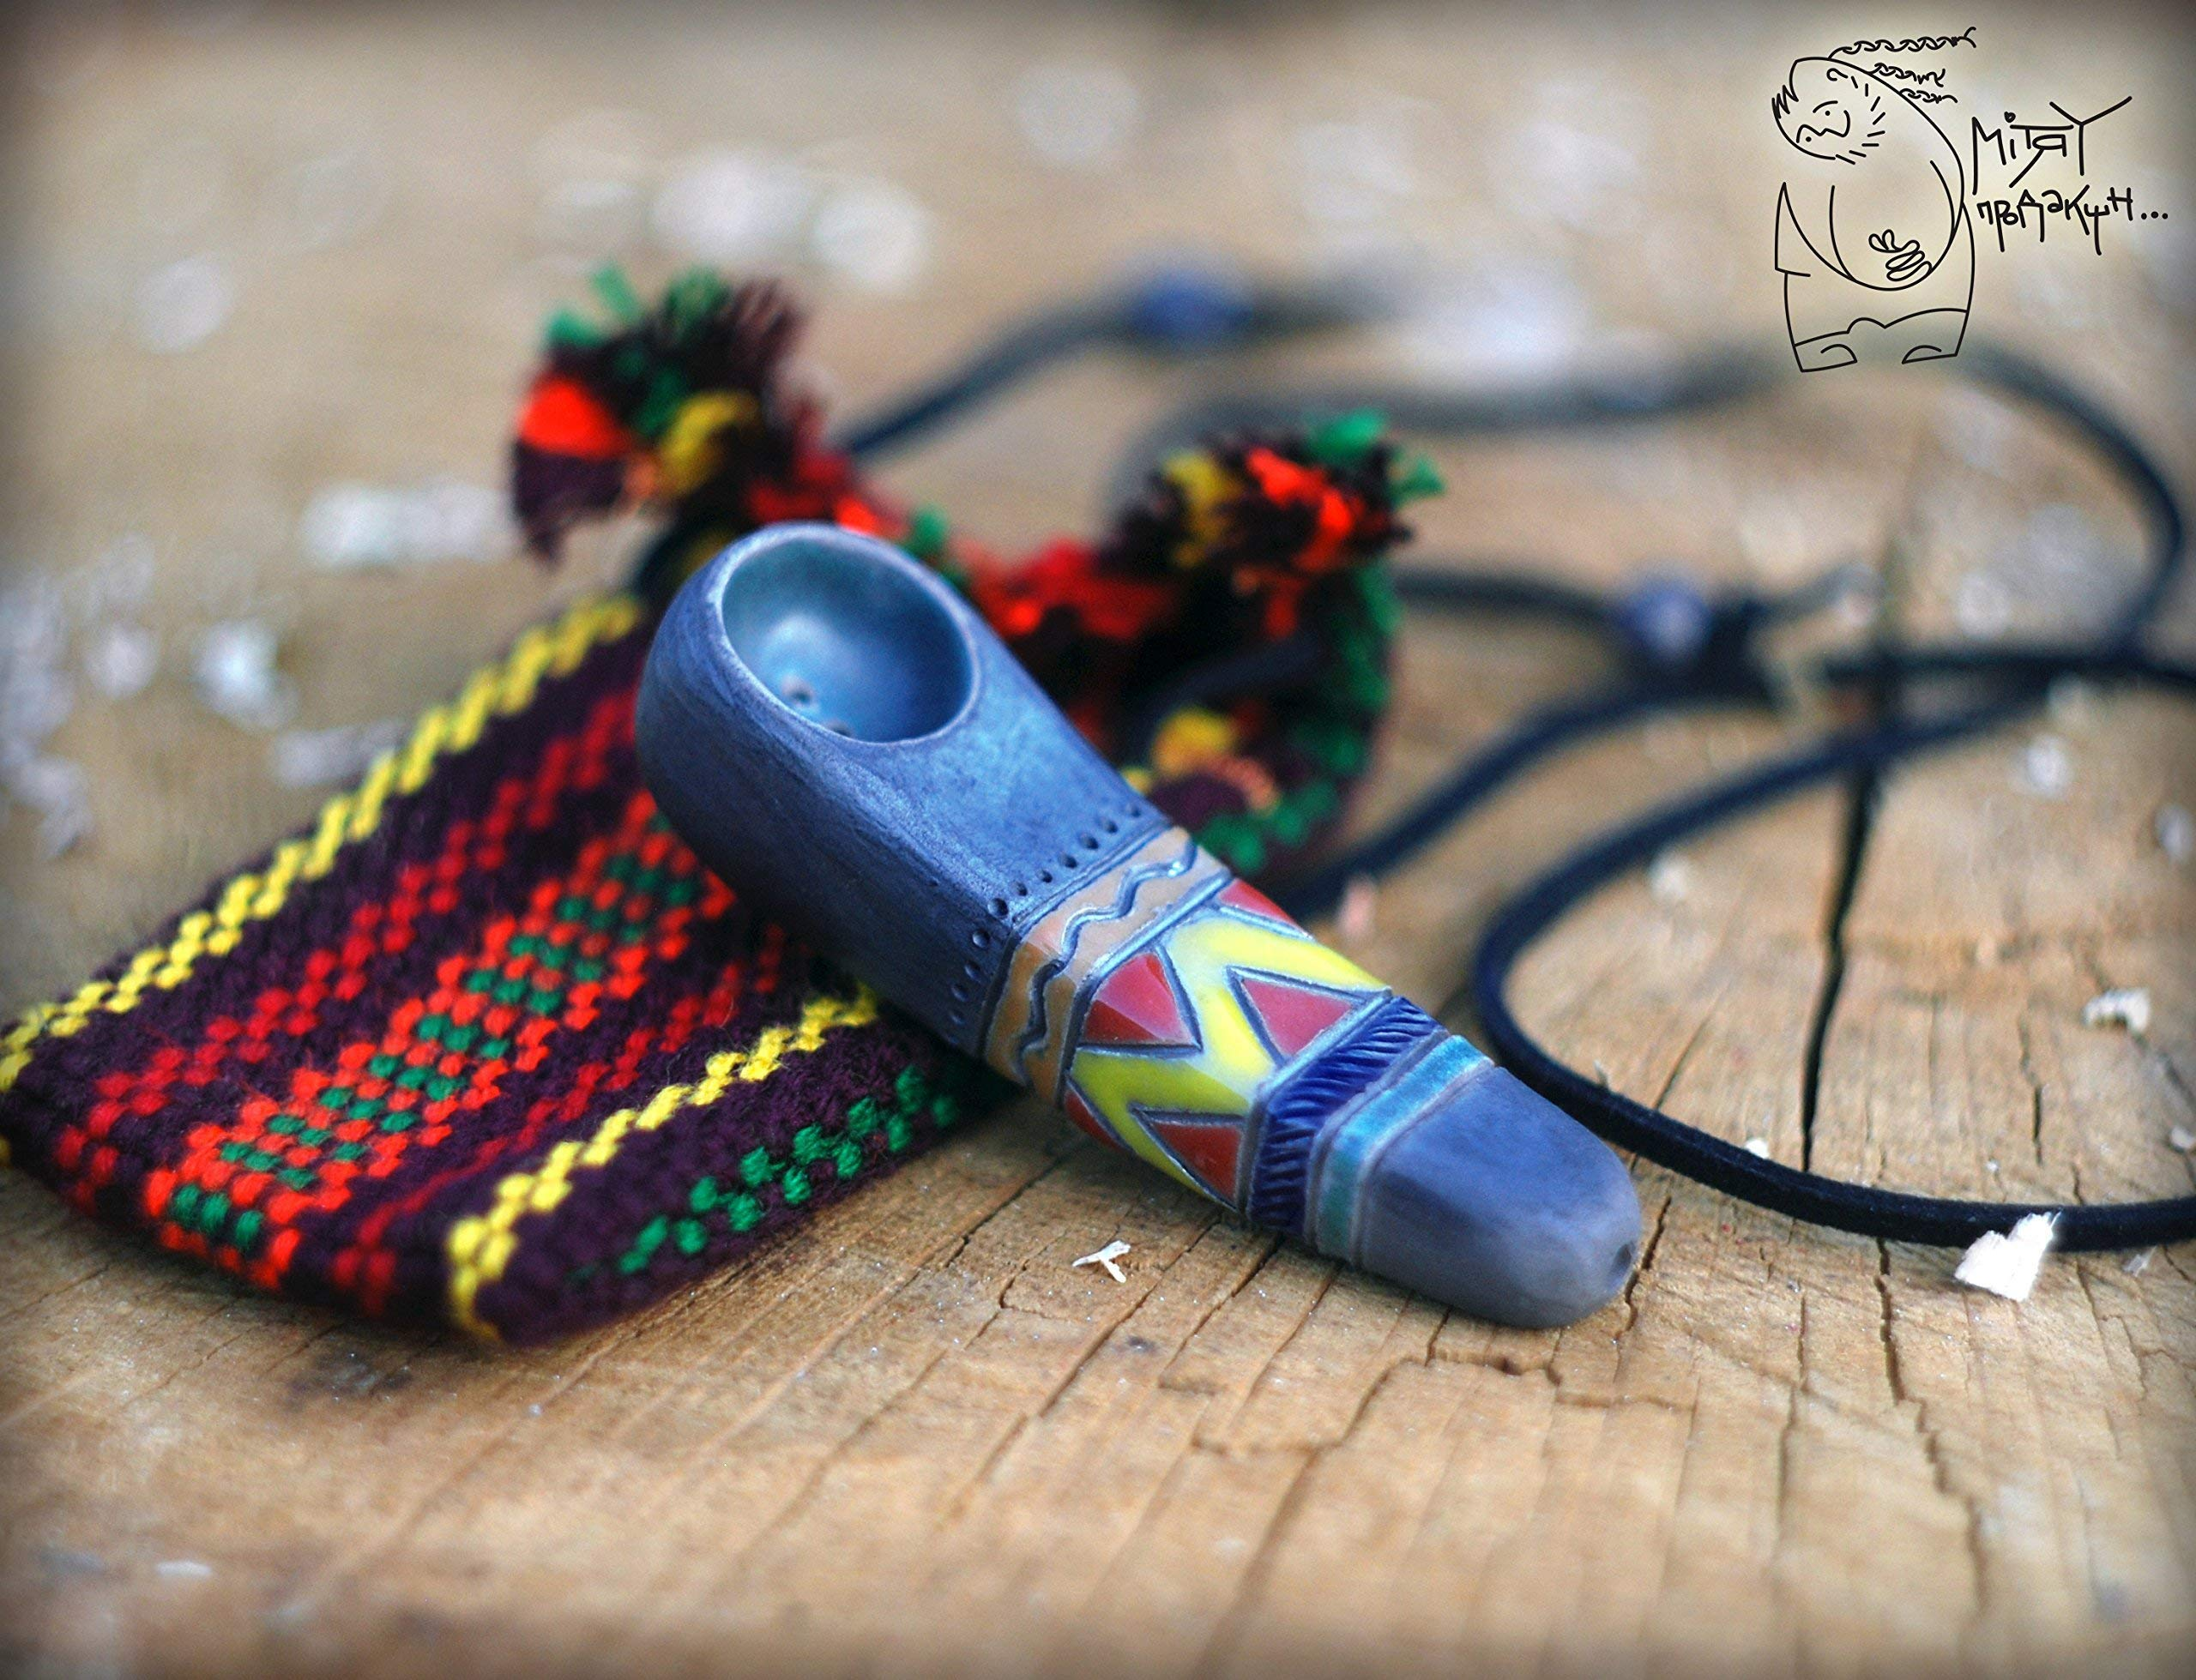 Handmade Tobacco pipe with bag 2,75'', hand pipe, small pipe with ornament, raku ceramics